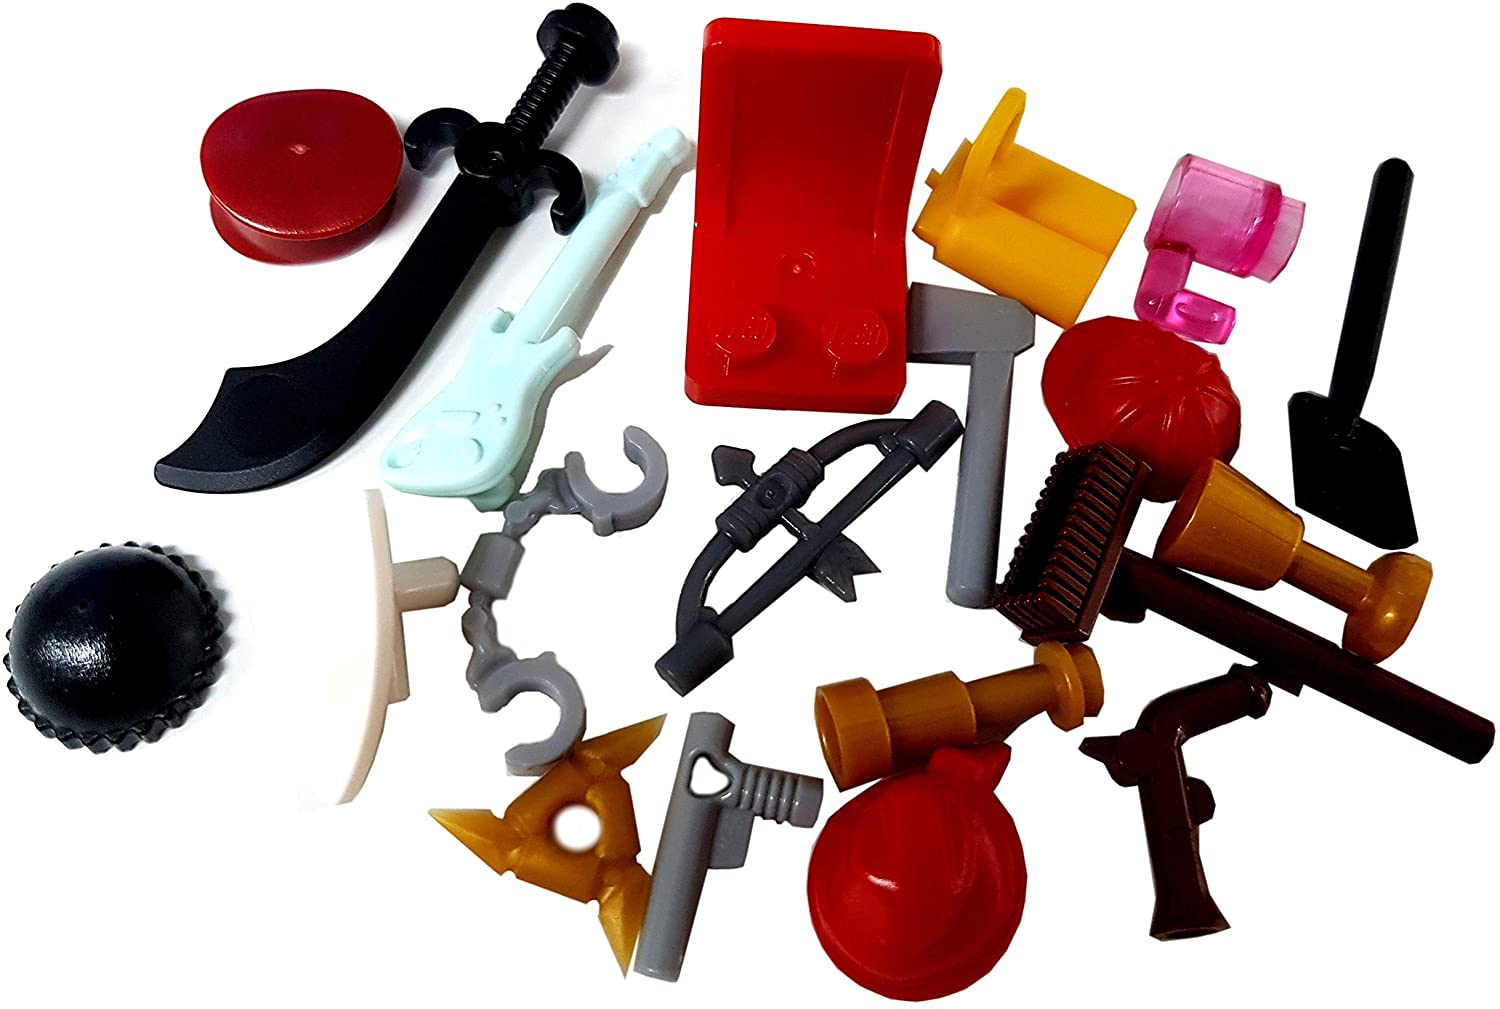 LEGO (X20) Minifigure Accessories - Hats, Weapons, Tools, Flippers Etc